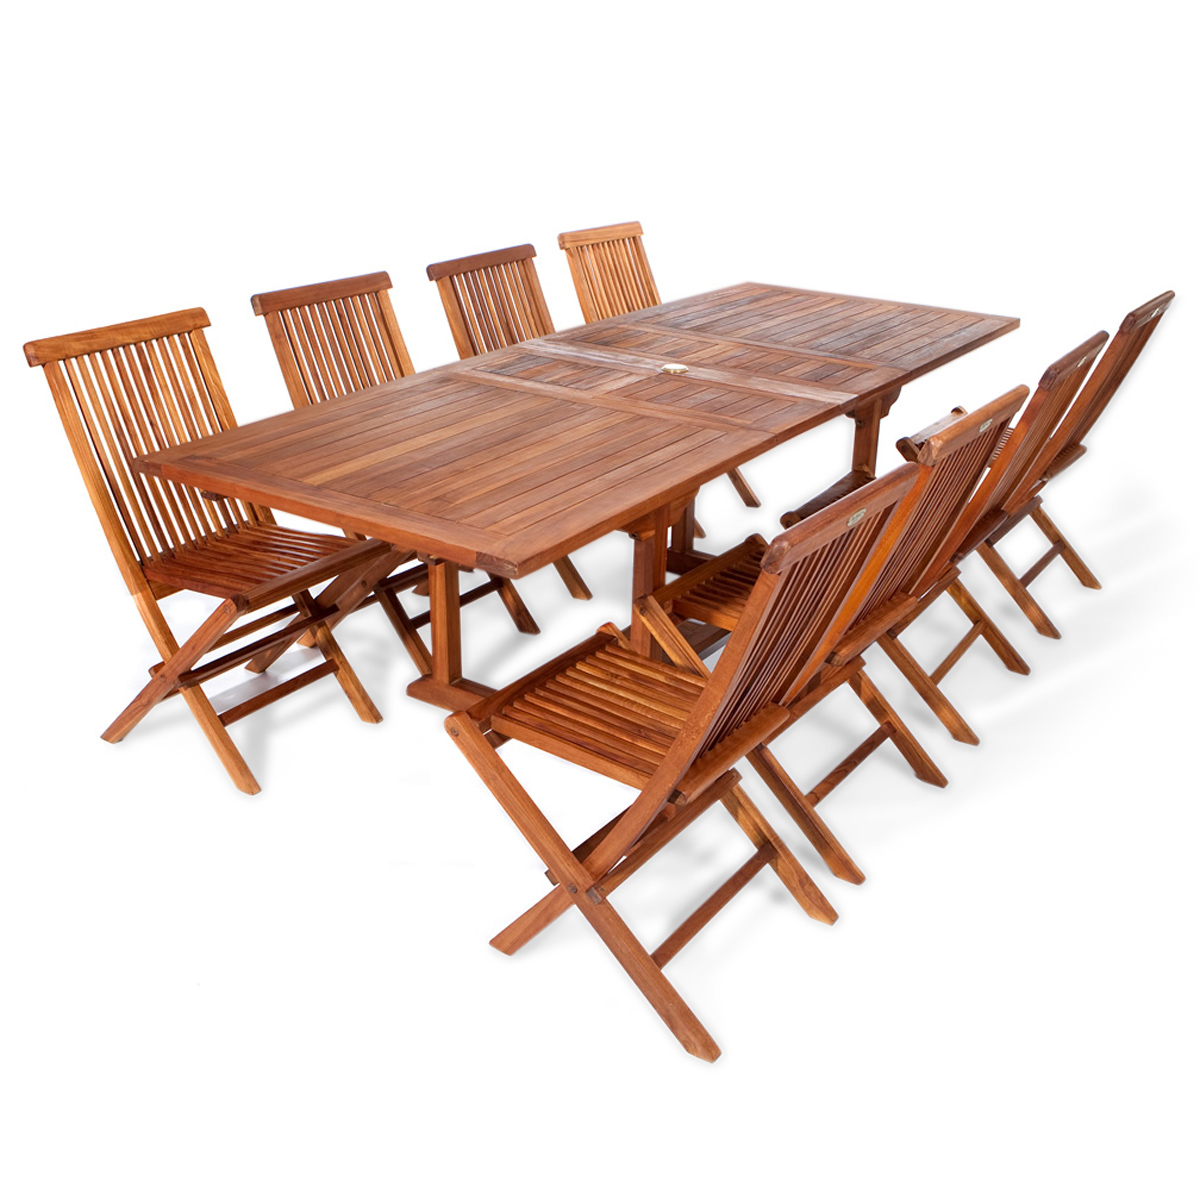 Adirondack Childrens Furniture By All Things Cedar Furniture